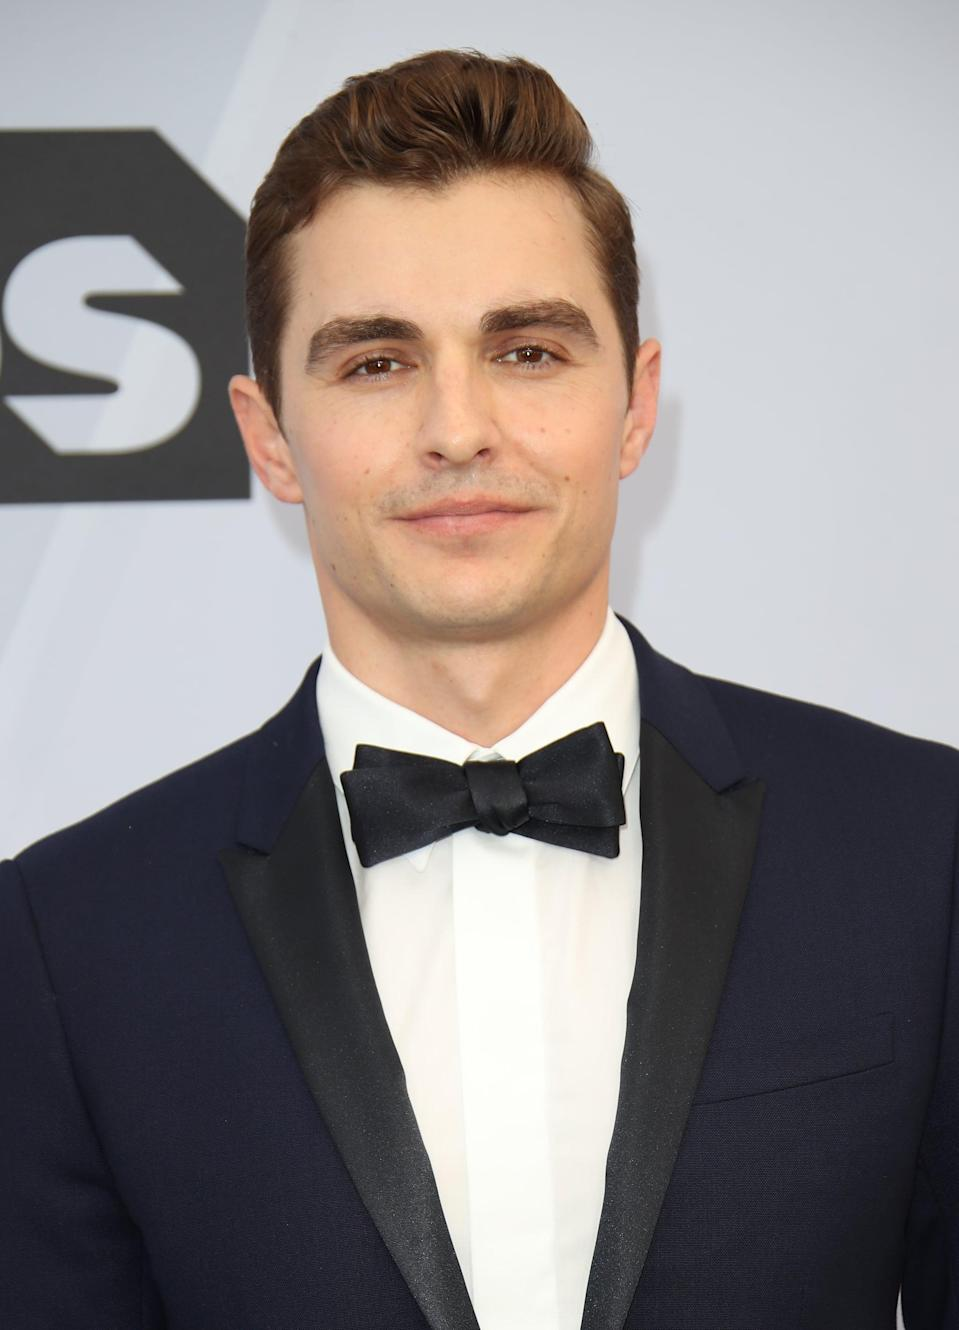 <p>Franco's big breakthrough in the movies came just after <strong>Scrubs</strong>, when he starred in 2012's <strong>21 Jump Street</strong>. Aside from a few guest spots over the years, he's stuck mostly to big-screen projects, including roles in the <strong>Now You See Me</strong> and the <strong>Lego Movie</strong> franchises, reprising his role as Eric for <strong>22 Jump Street</strong>, and buzzy movies like <strong>The Disaster Artist</strong> and <strong>If Beale Street Could Talk</strong>. </p>